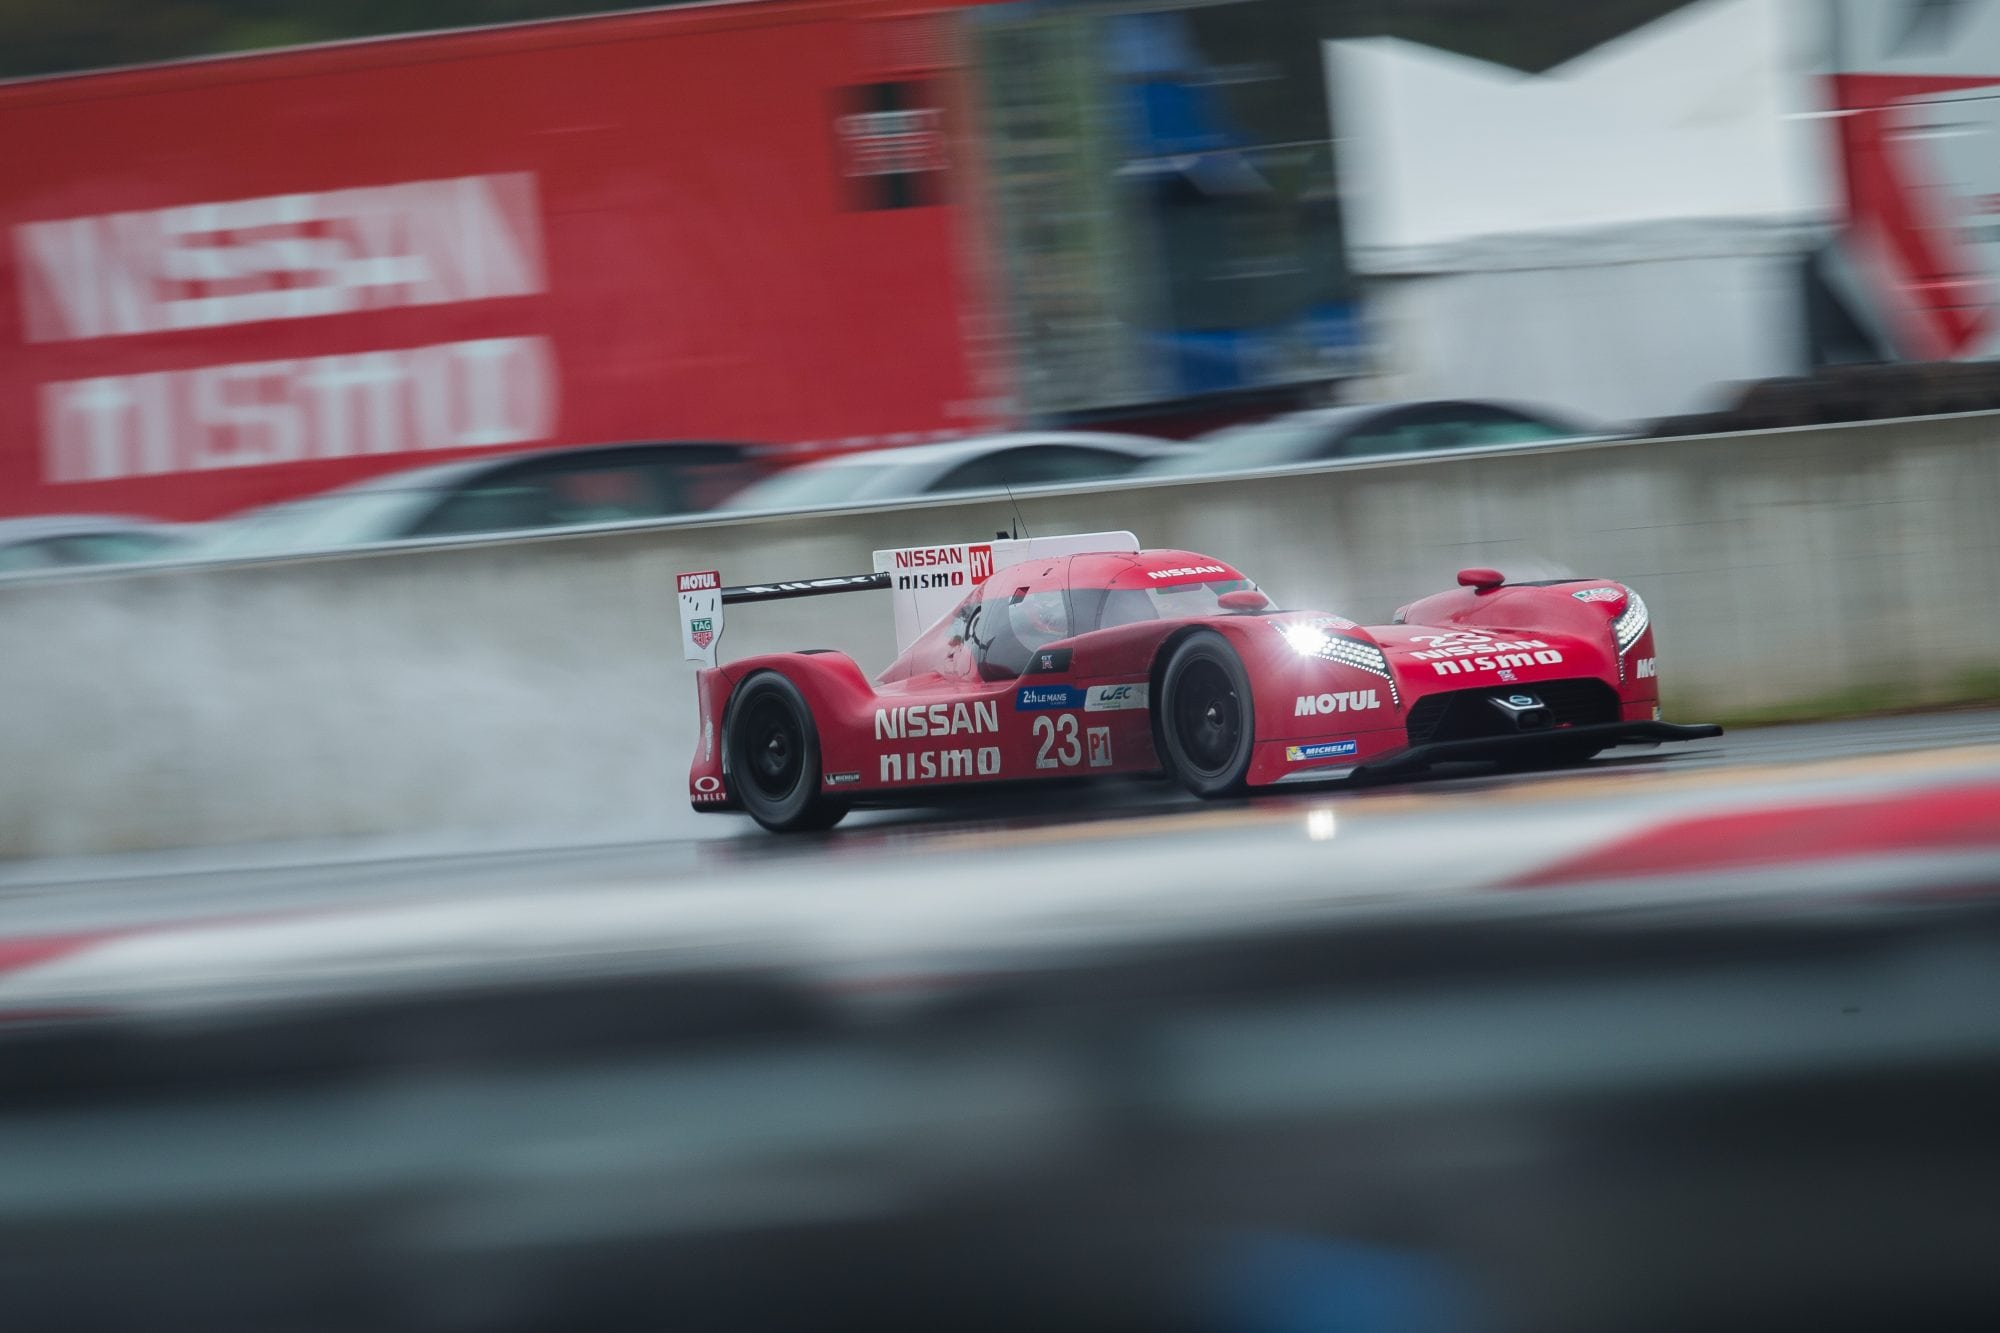 Nismo University Gt R Lm Nismo Test Video Released